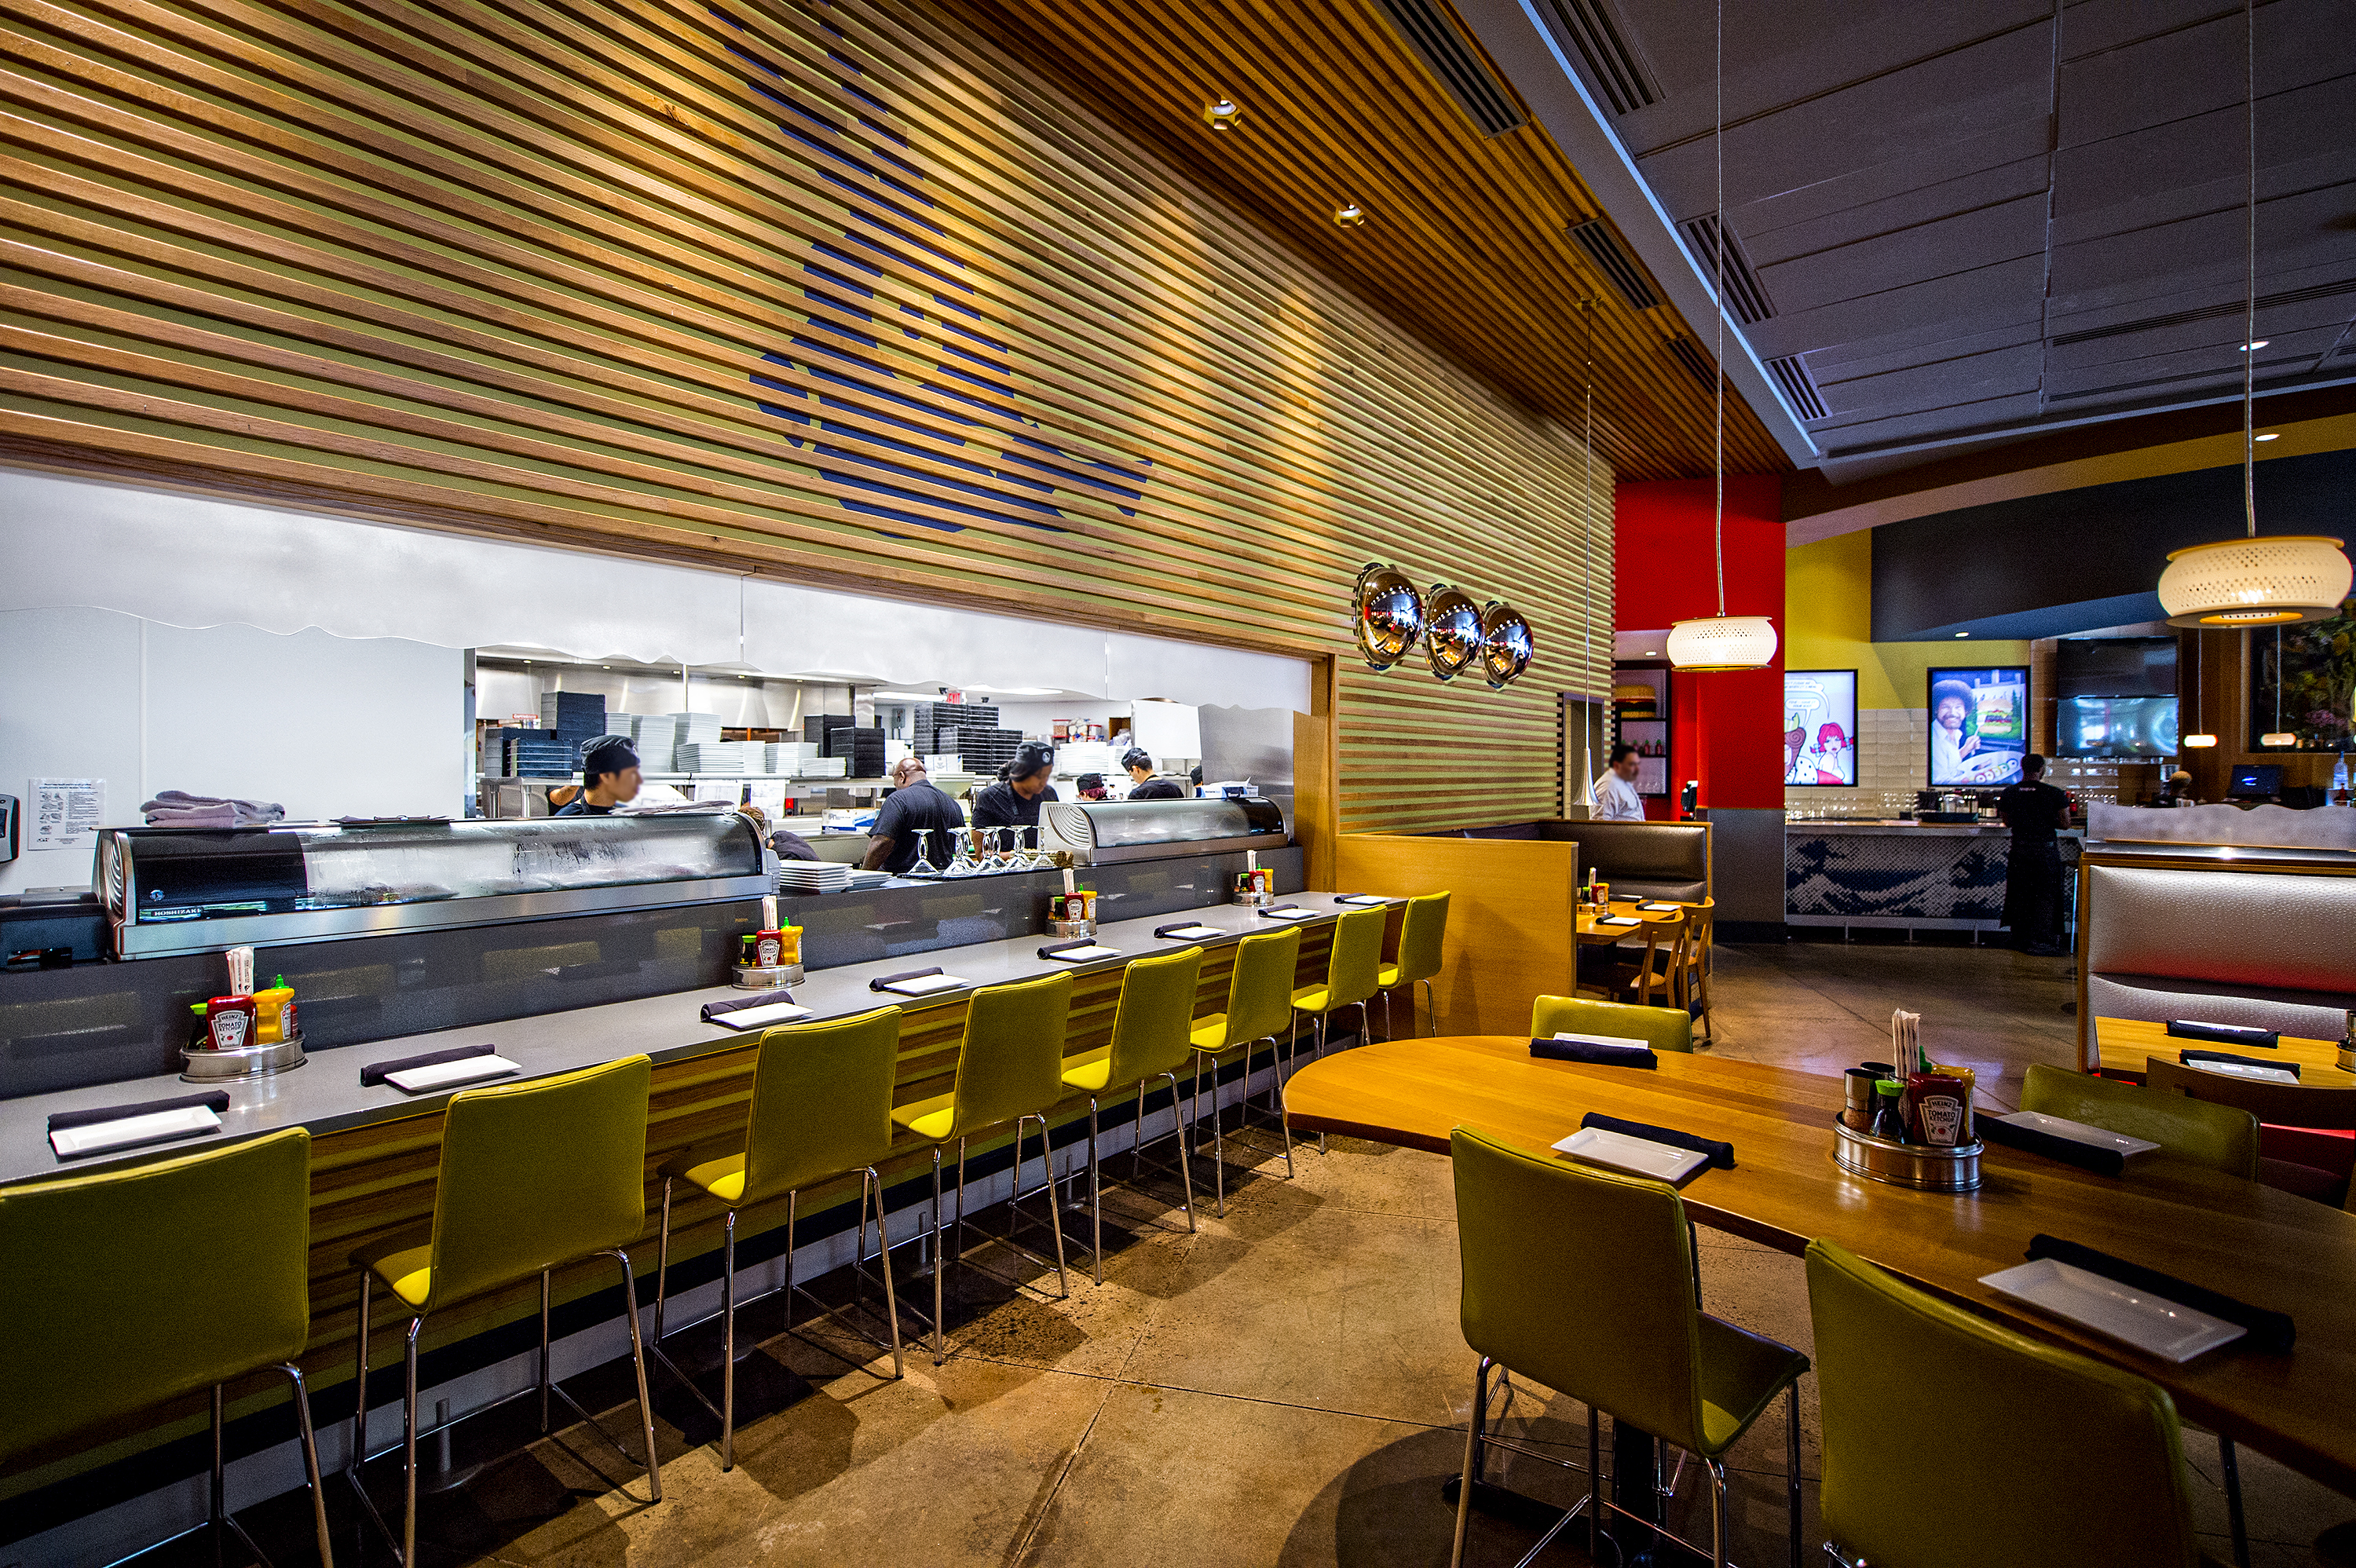 Photo: Jonathan Phillips         Sit at the sushi bar at Cowfish and watch the chefs at work or pull up a seat at one of the many fun tables.